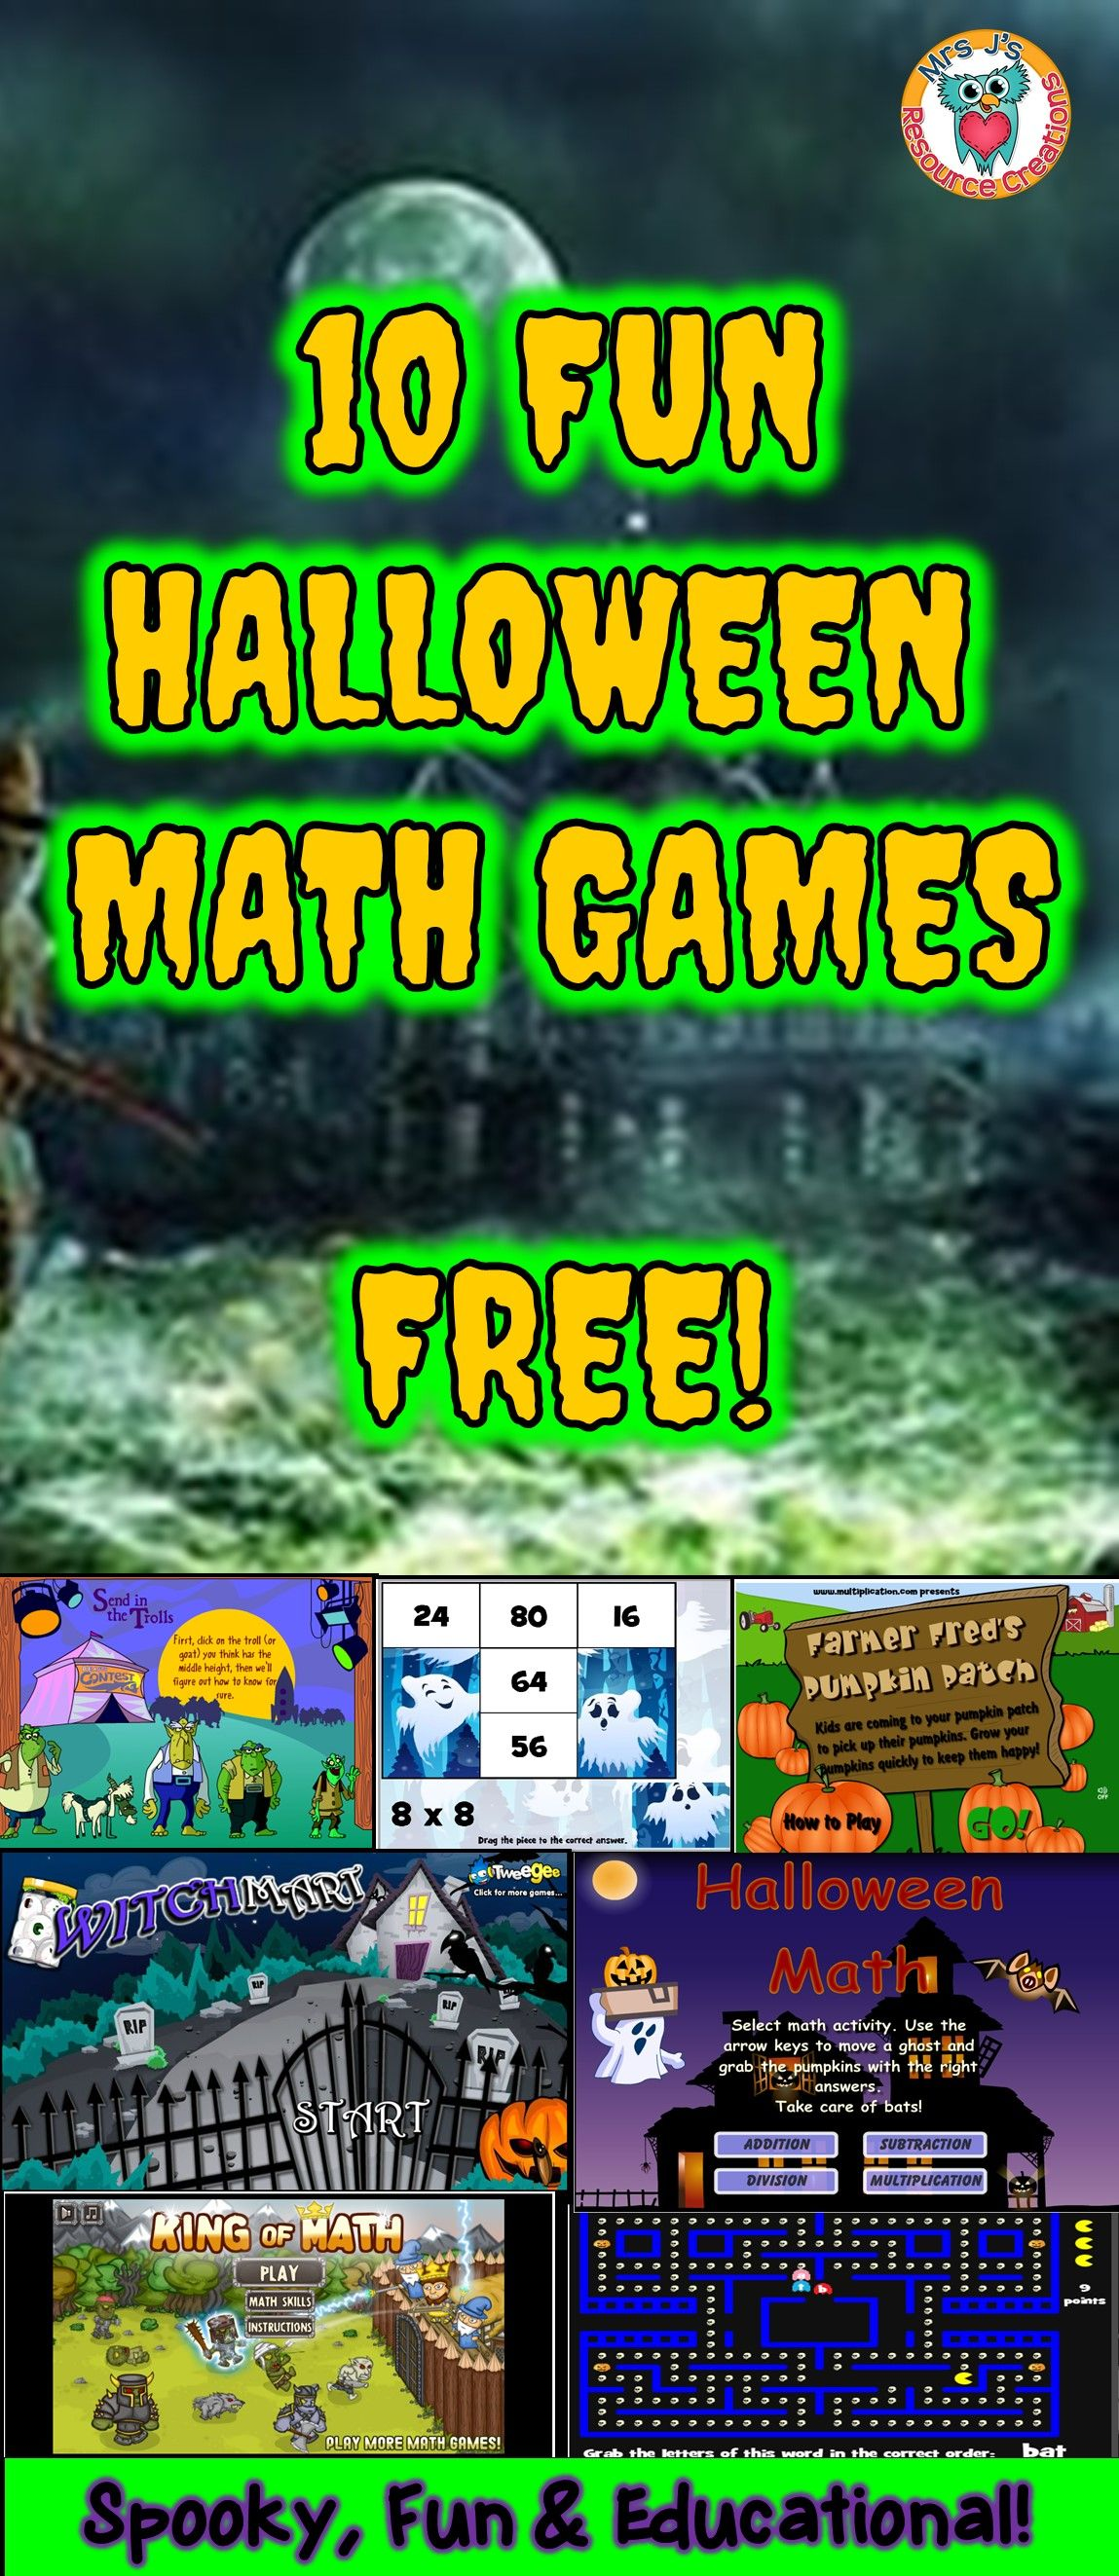 Halloween Math Games To Play Online For Free